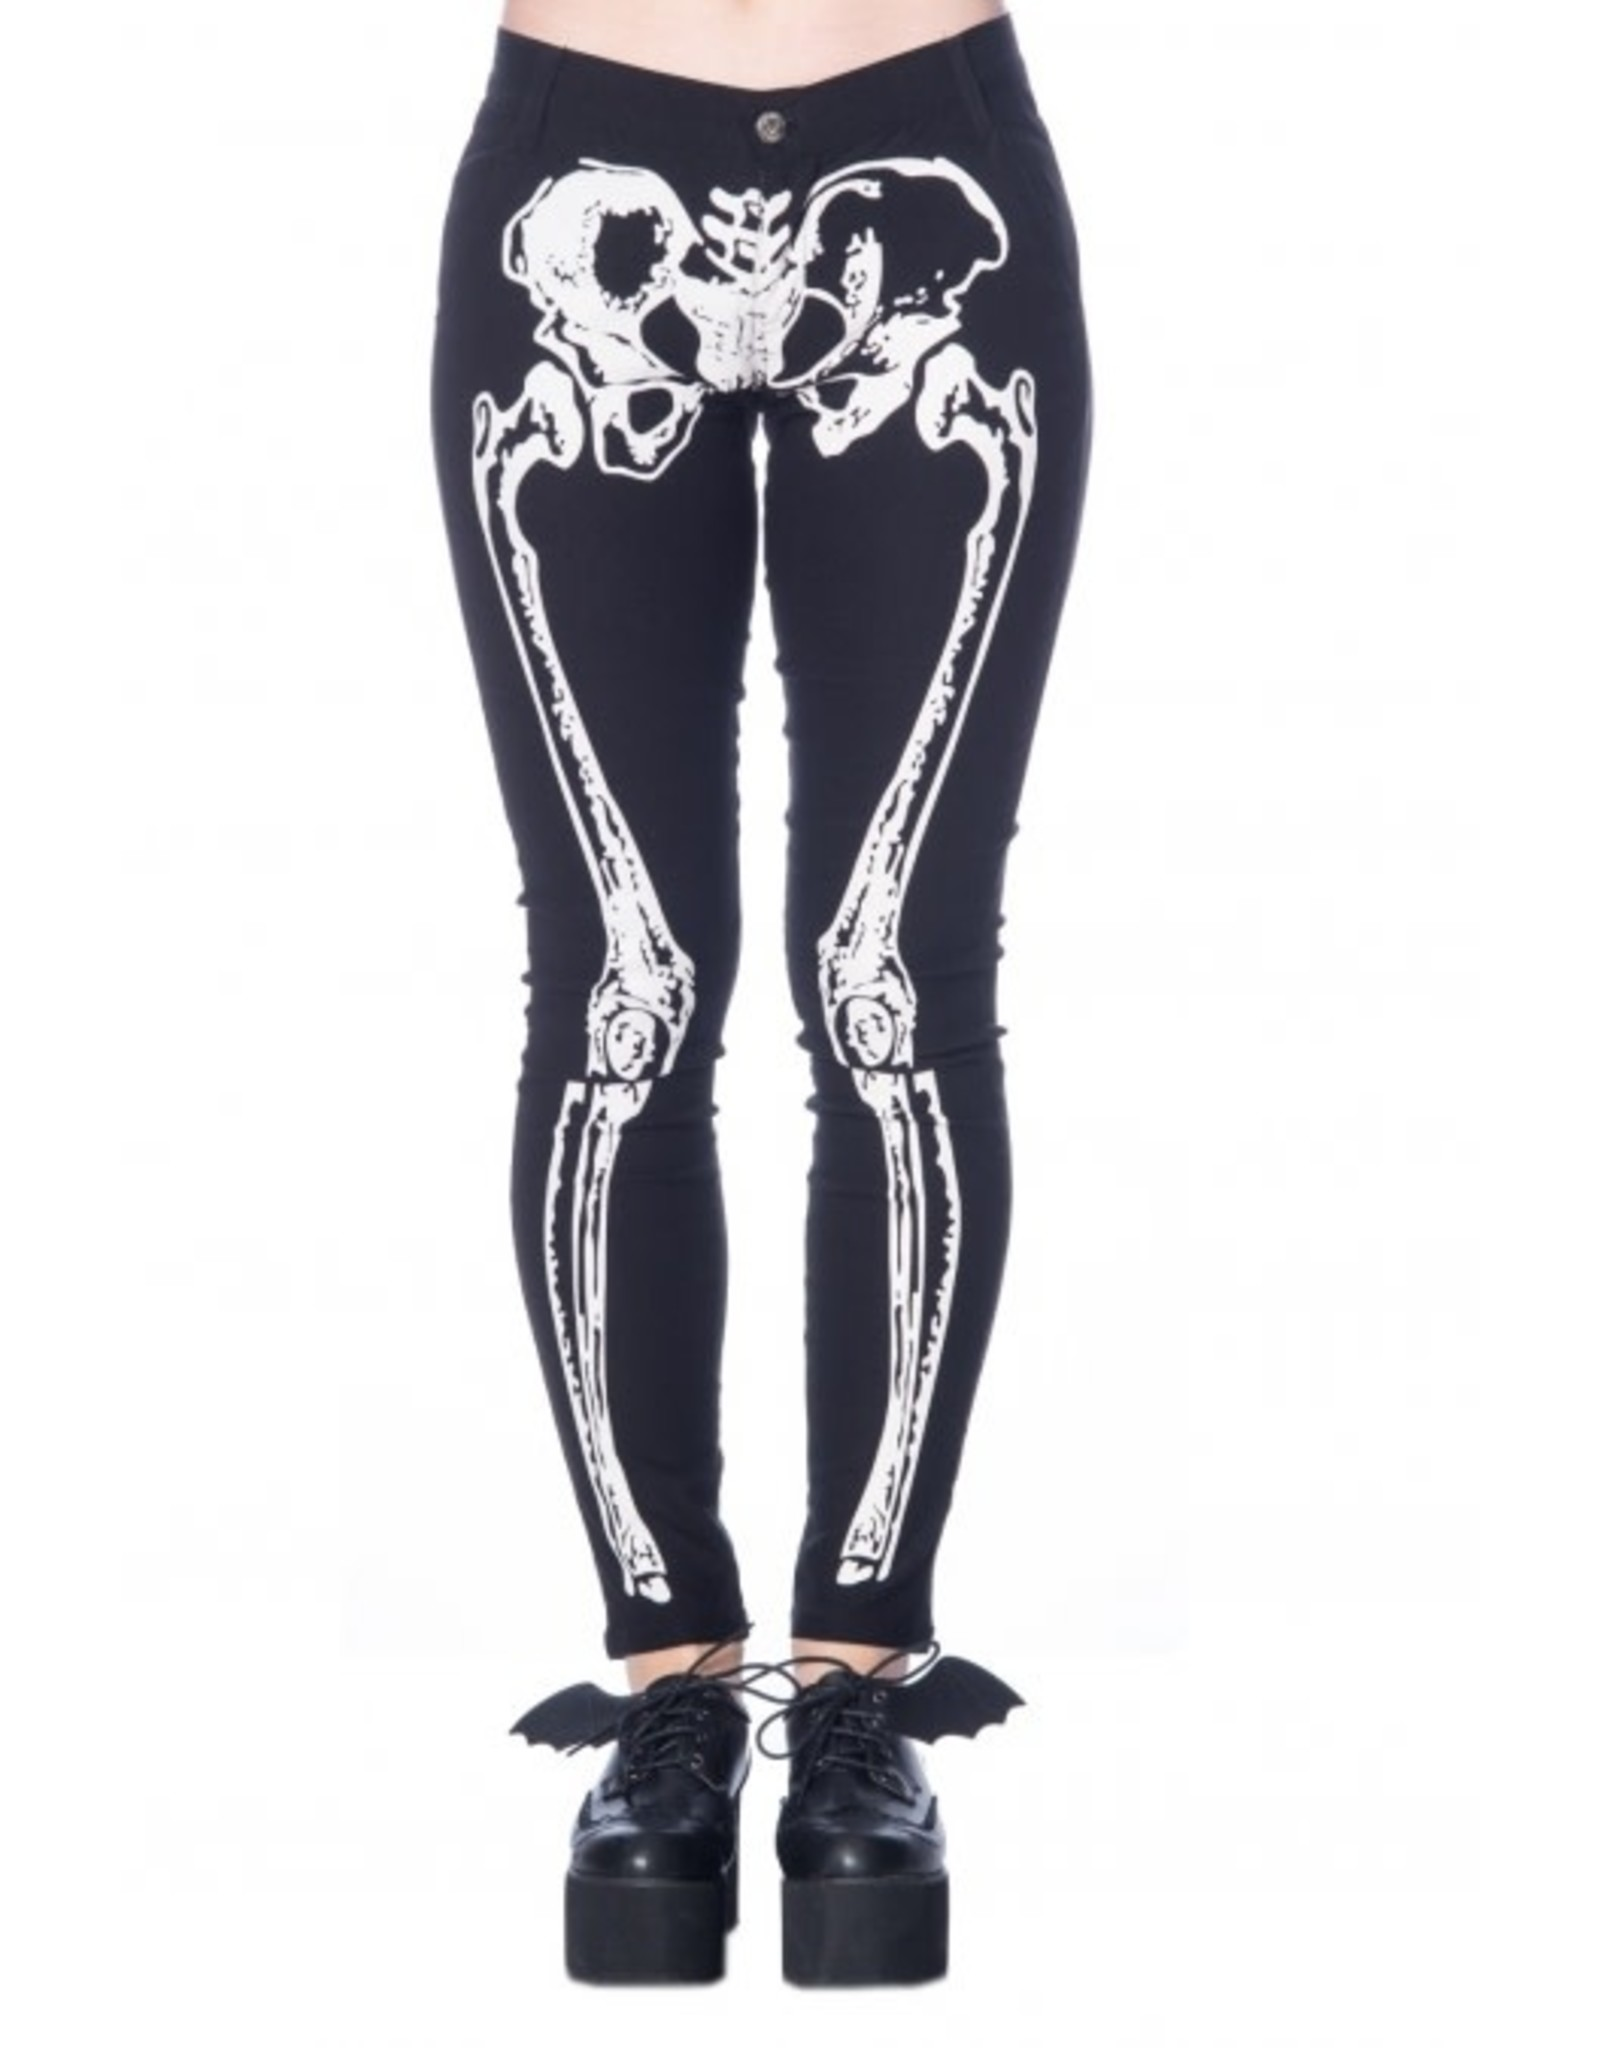 BANNED - Skin and Bones Trousers